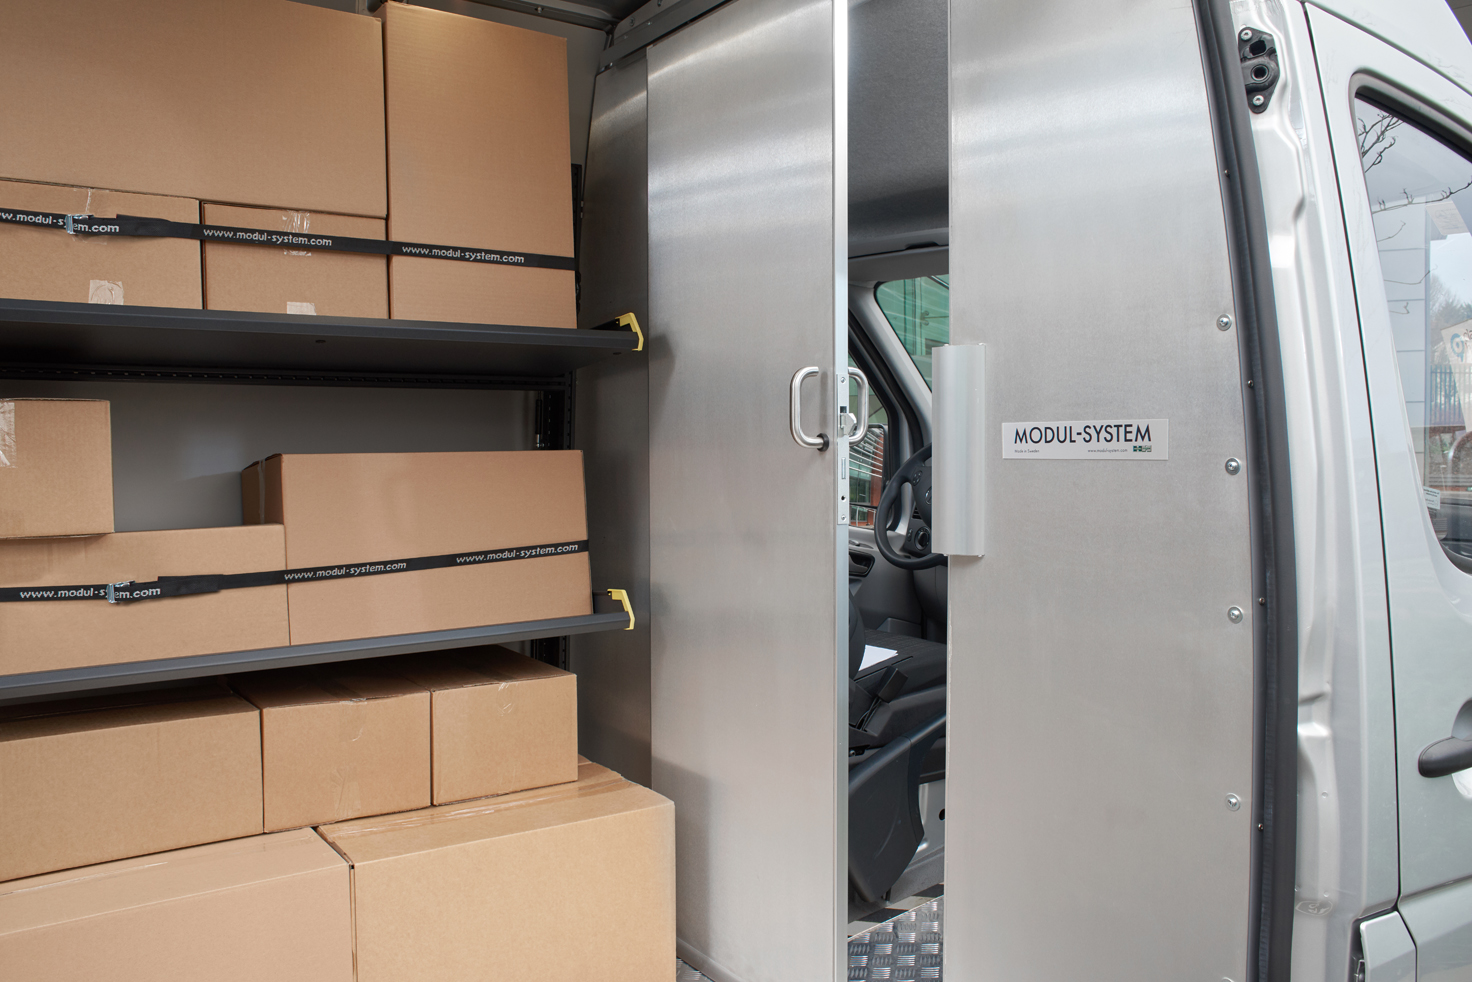 Modul-express van shelving with delivery boxes